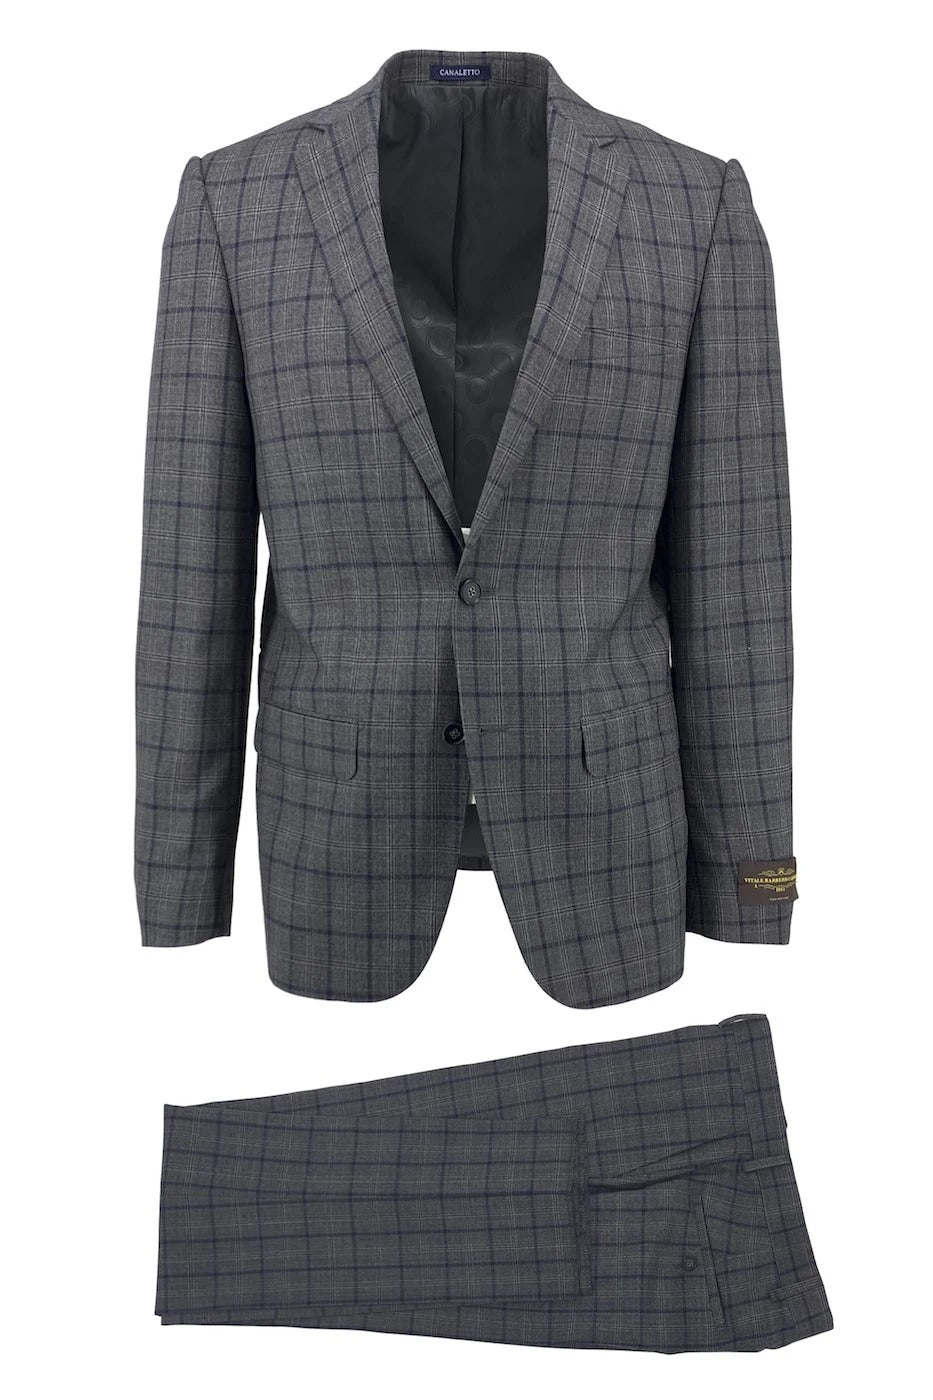 Canaletto Gray with Navy Windowpane Dolcetto Modern Fit Pure Wool Suit by Vitale Barberis Canonico Cloth CV27.152/1